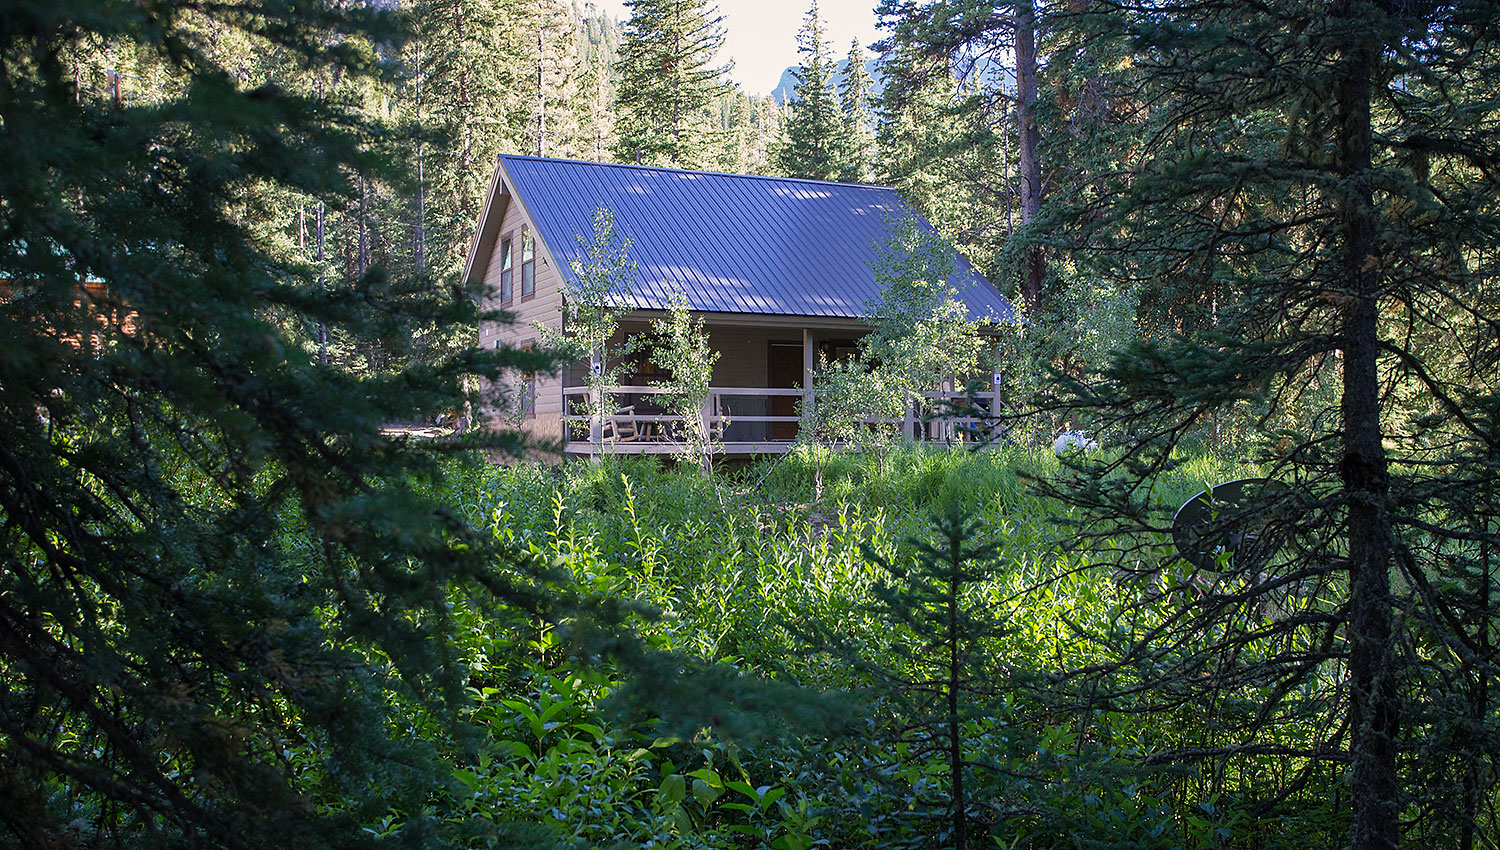 cabins lakeview and yellowstone outsidelakeviewnew island lodge lodges park